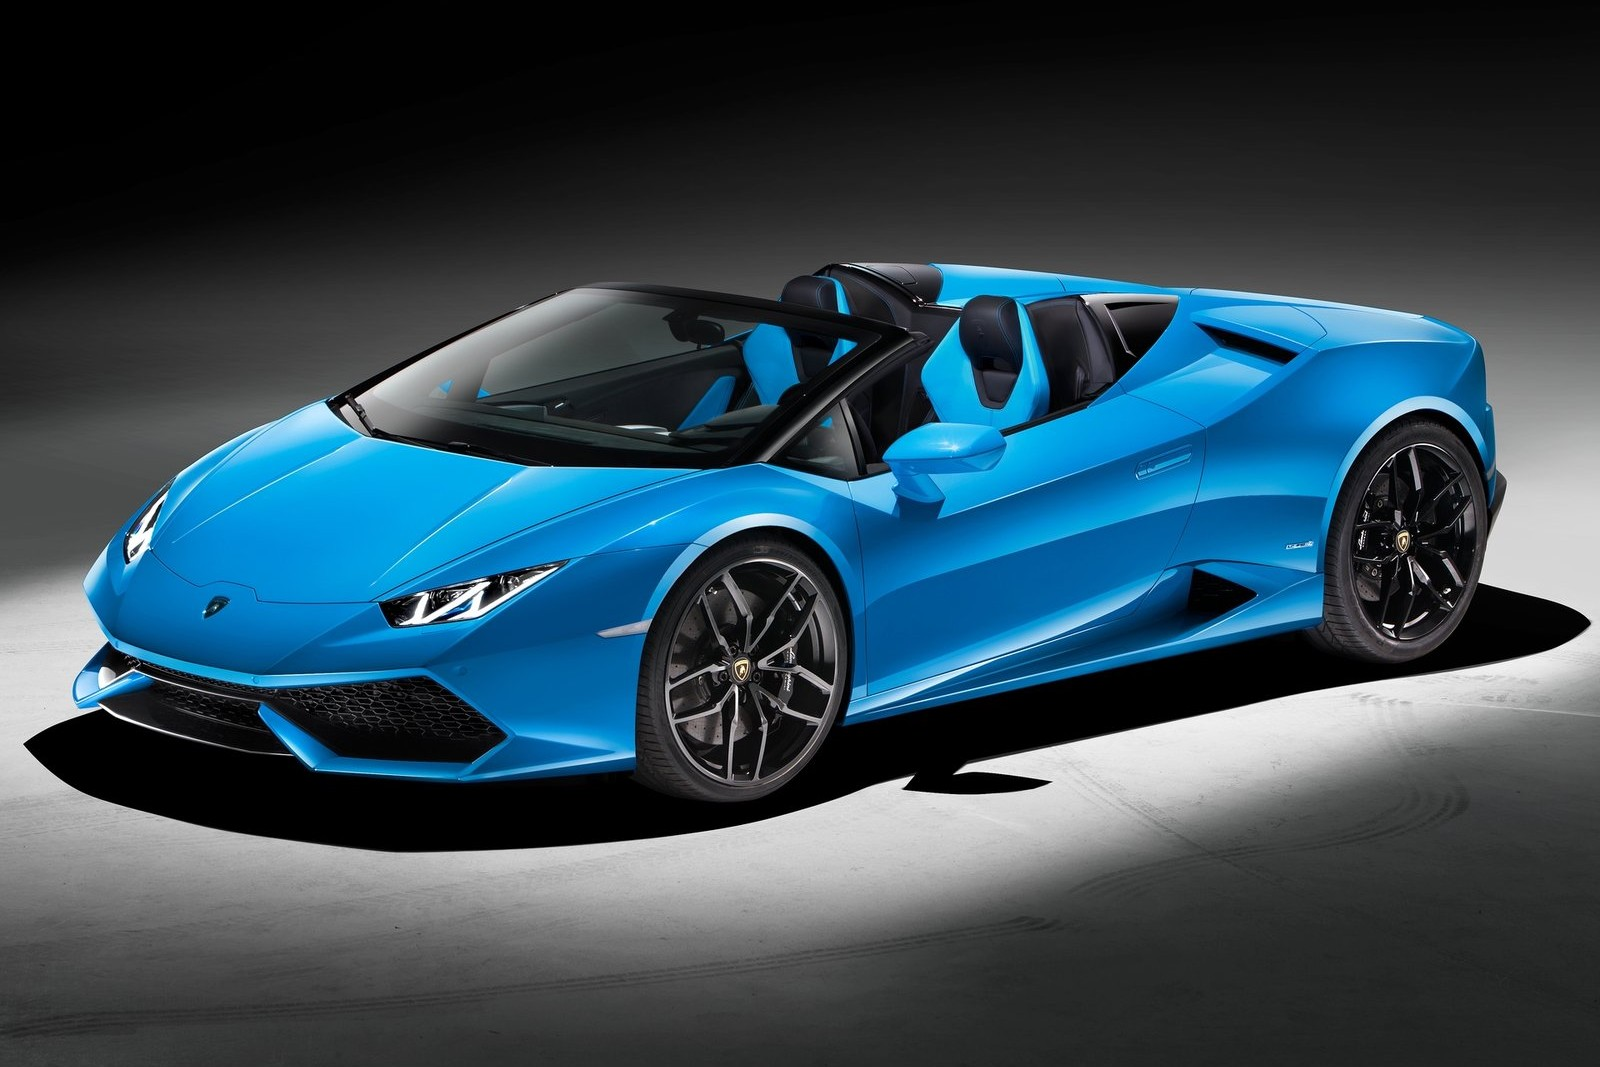 The Huracan is Lamborghini's newest model, and for 2016 it gains a convertible model called the Spyder being shown in Canada for the first time.